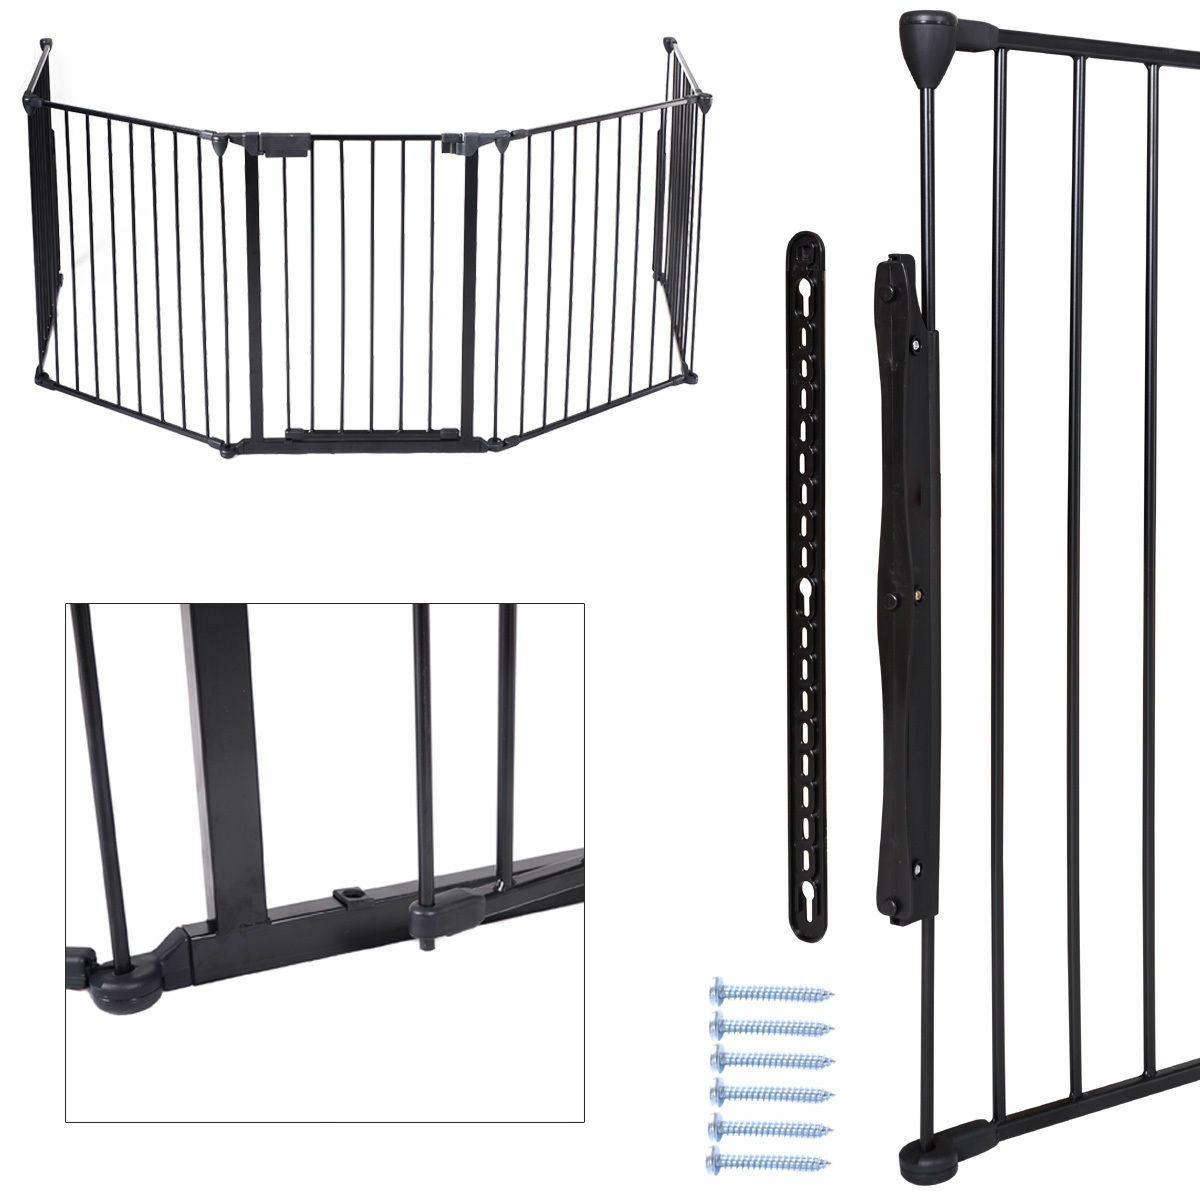 Fireplace Fence Hearth Gate BBQ Metal Fire Pet Dog